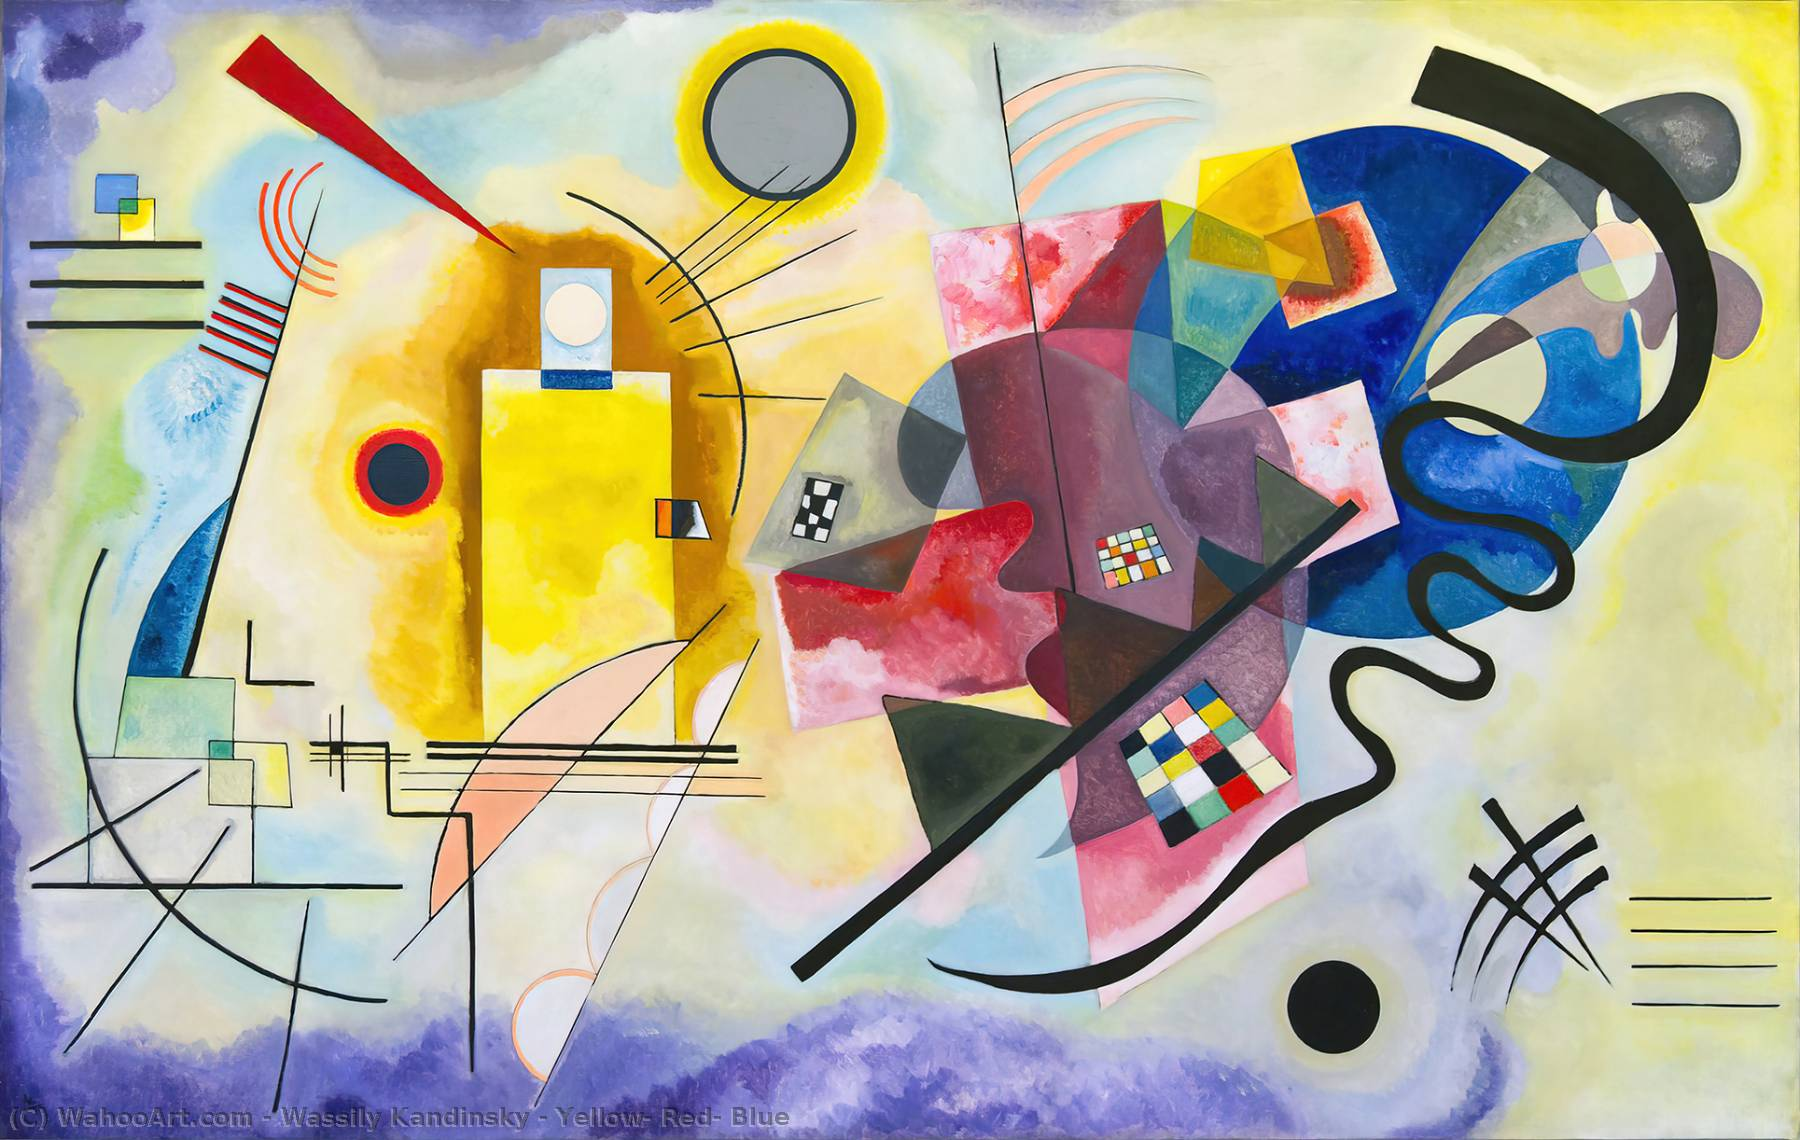 Yellow, Red, Blue, 1925 by Wassily Kandinsky (1866-1944, Russia) | Museum Art Reproductions Wassily Kandinsky | WahooArt.com